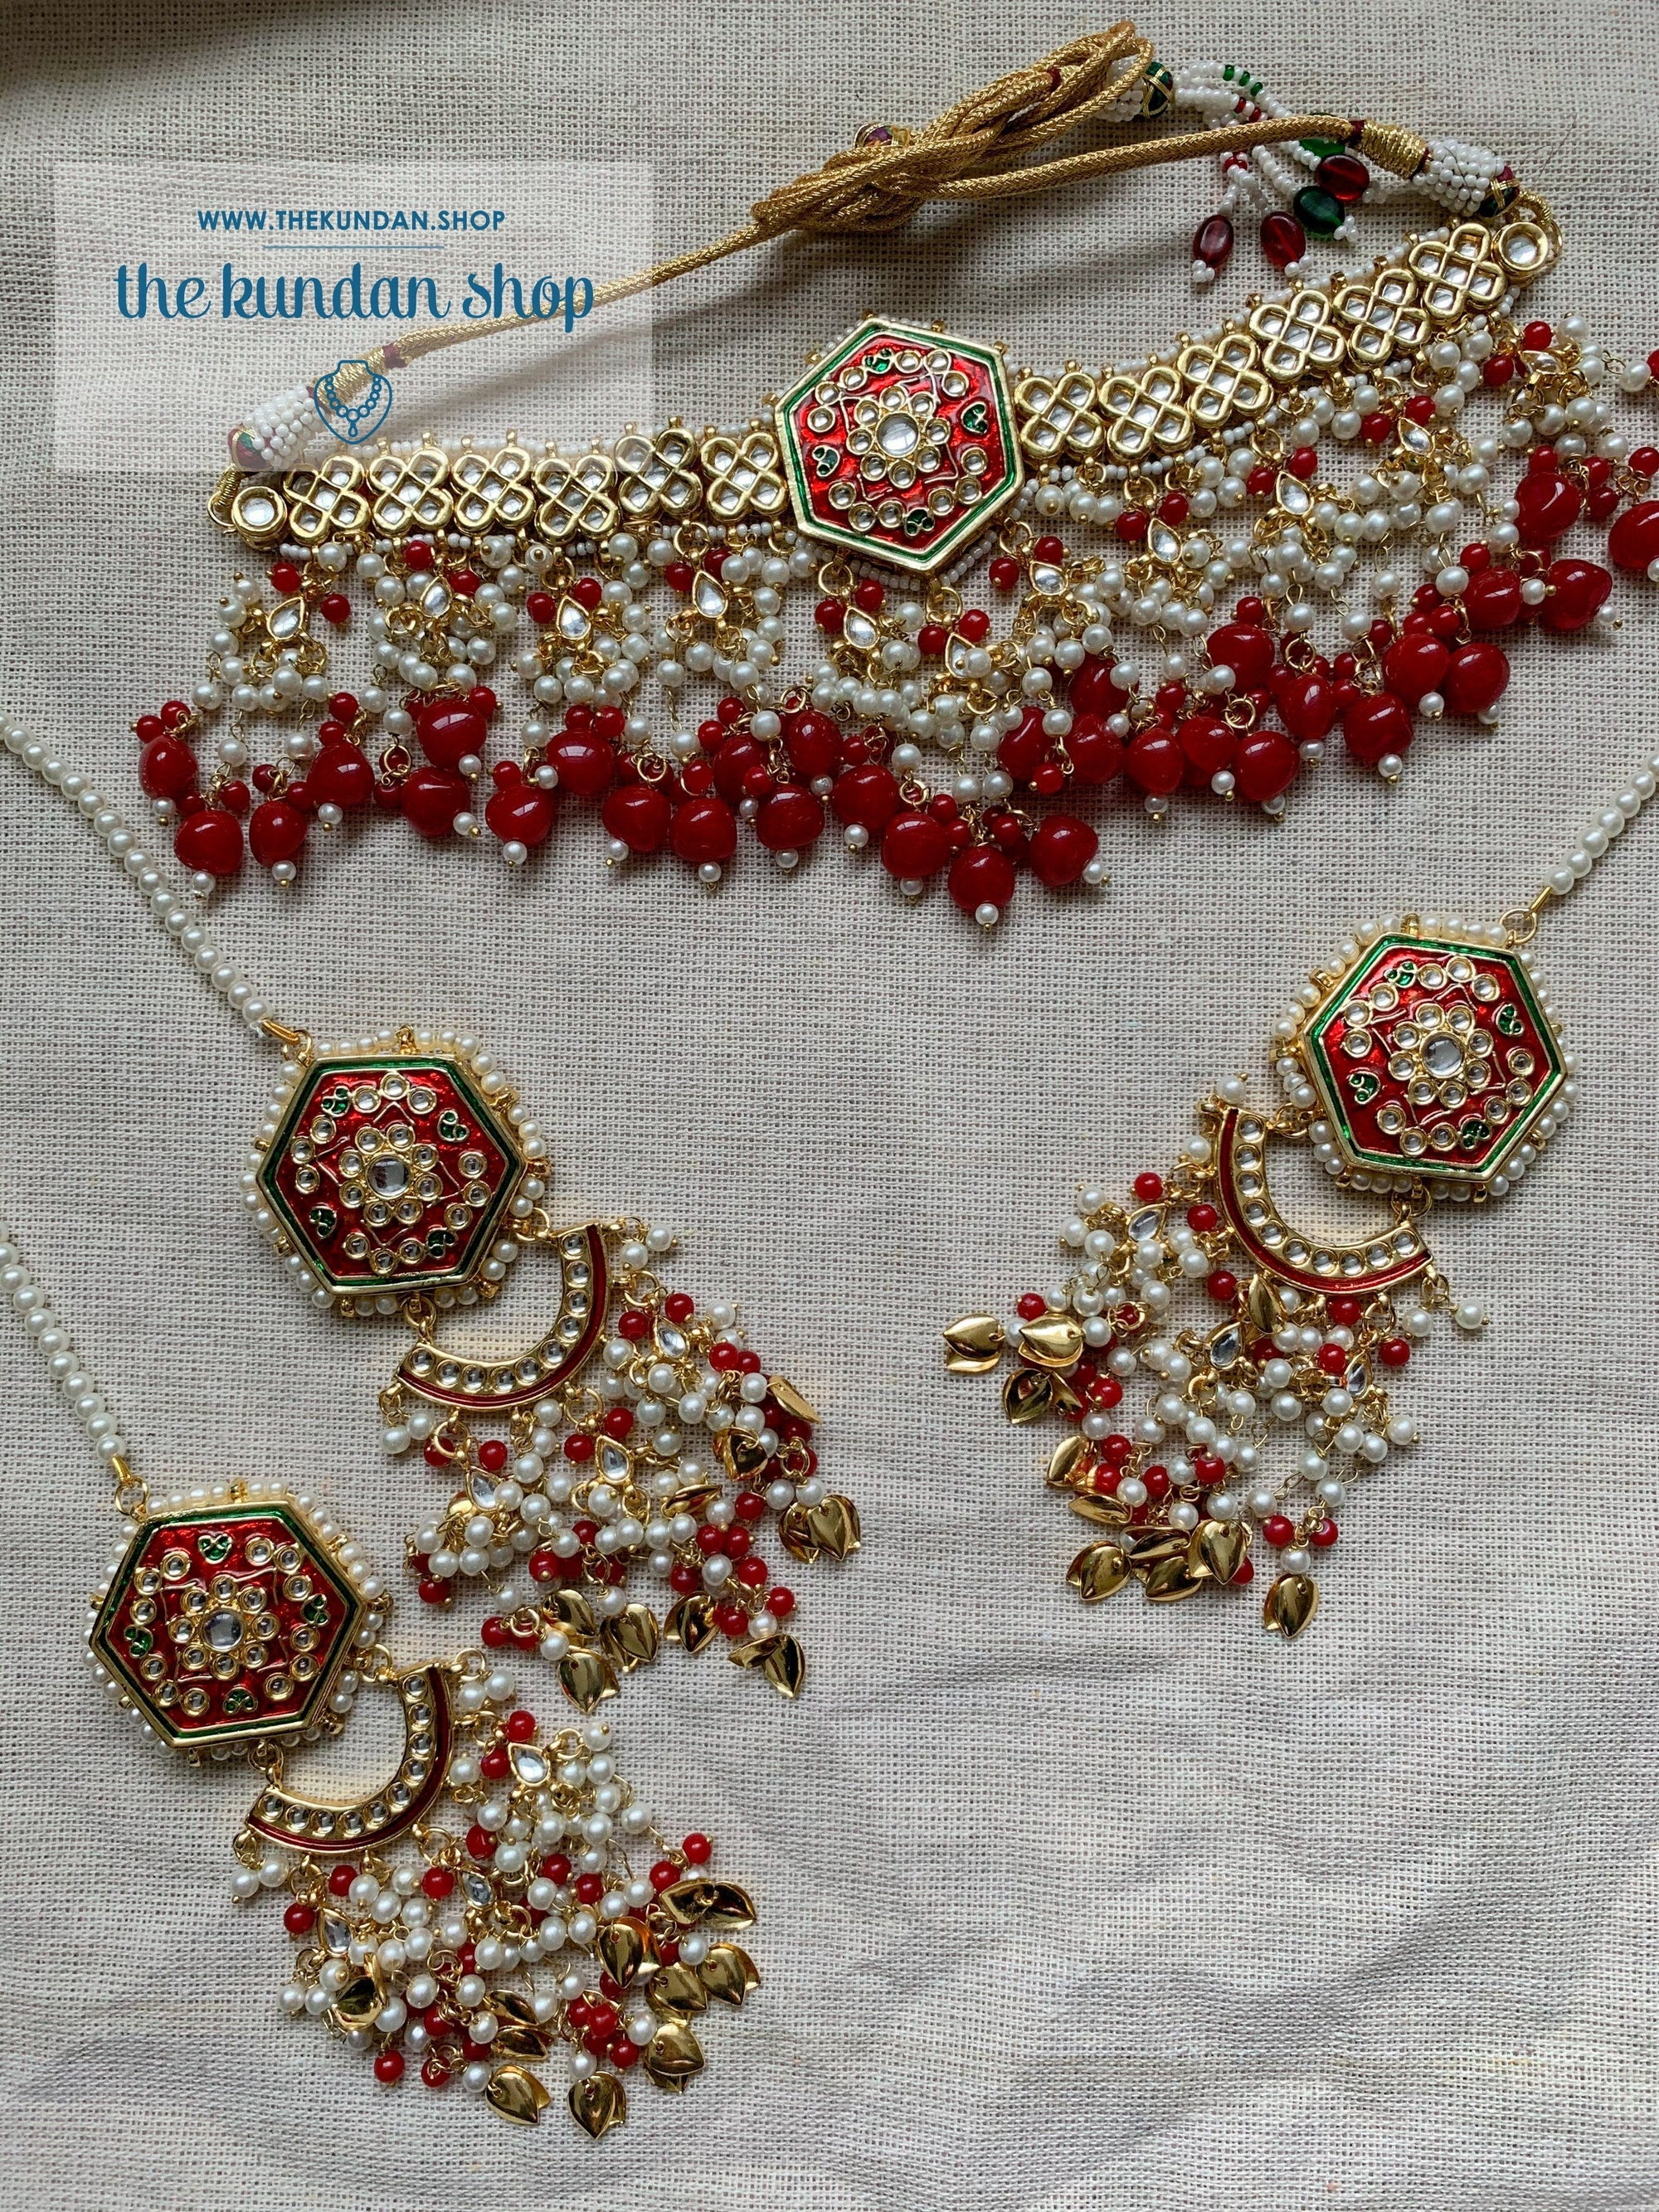 Ethereal in Ruby Red Necklace Sets THE KUNDAN SHOP